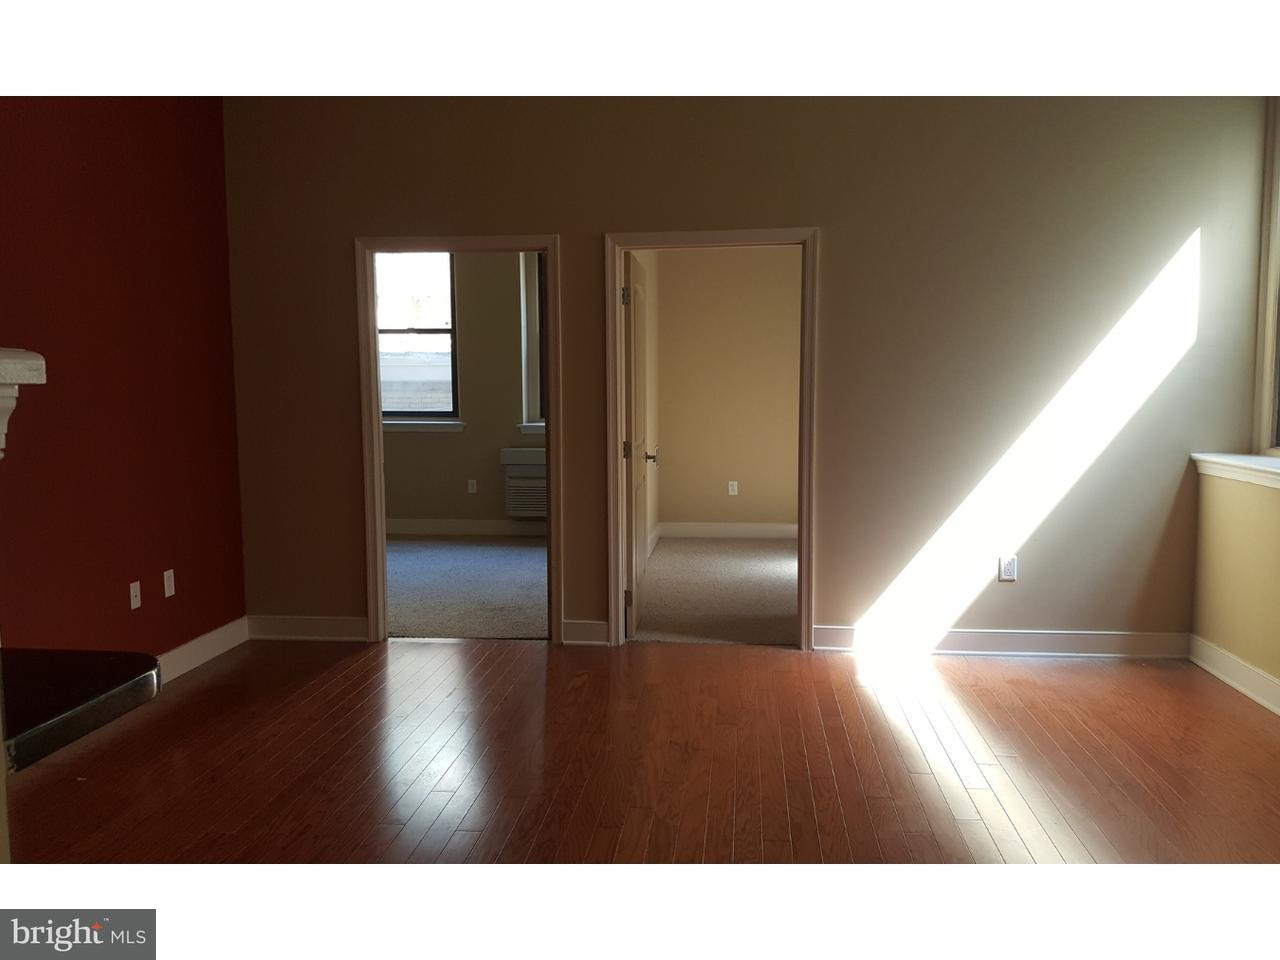 Single Family Home for Rent at 171 GRAPE Street Philadelphia, Pennsylvania 19127 United States